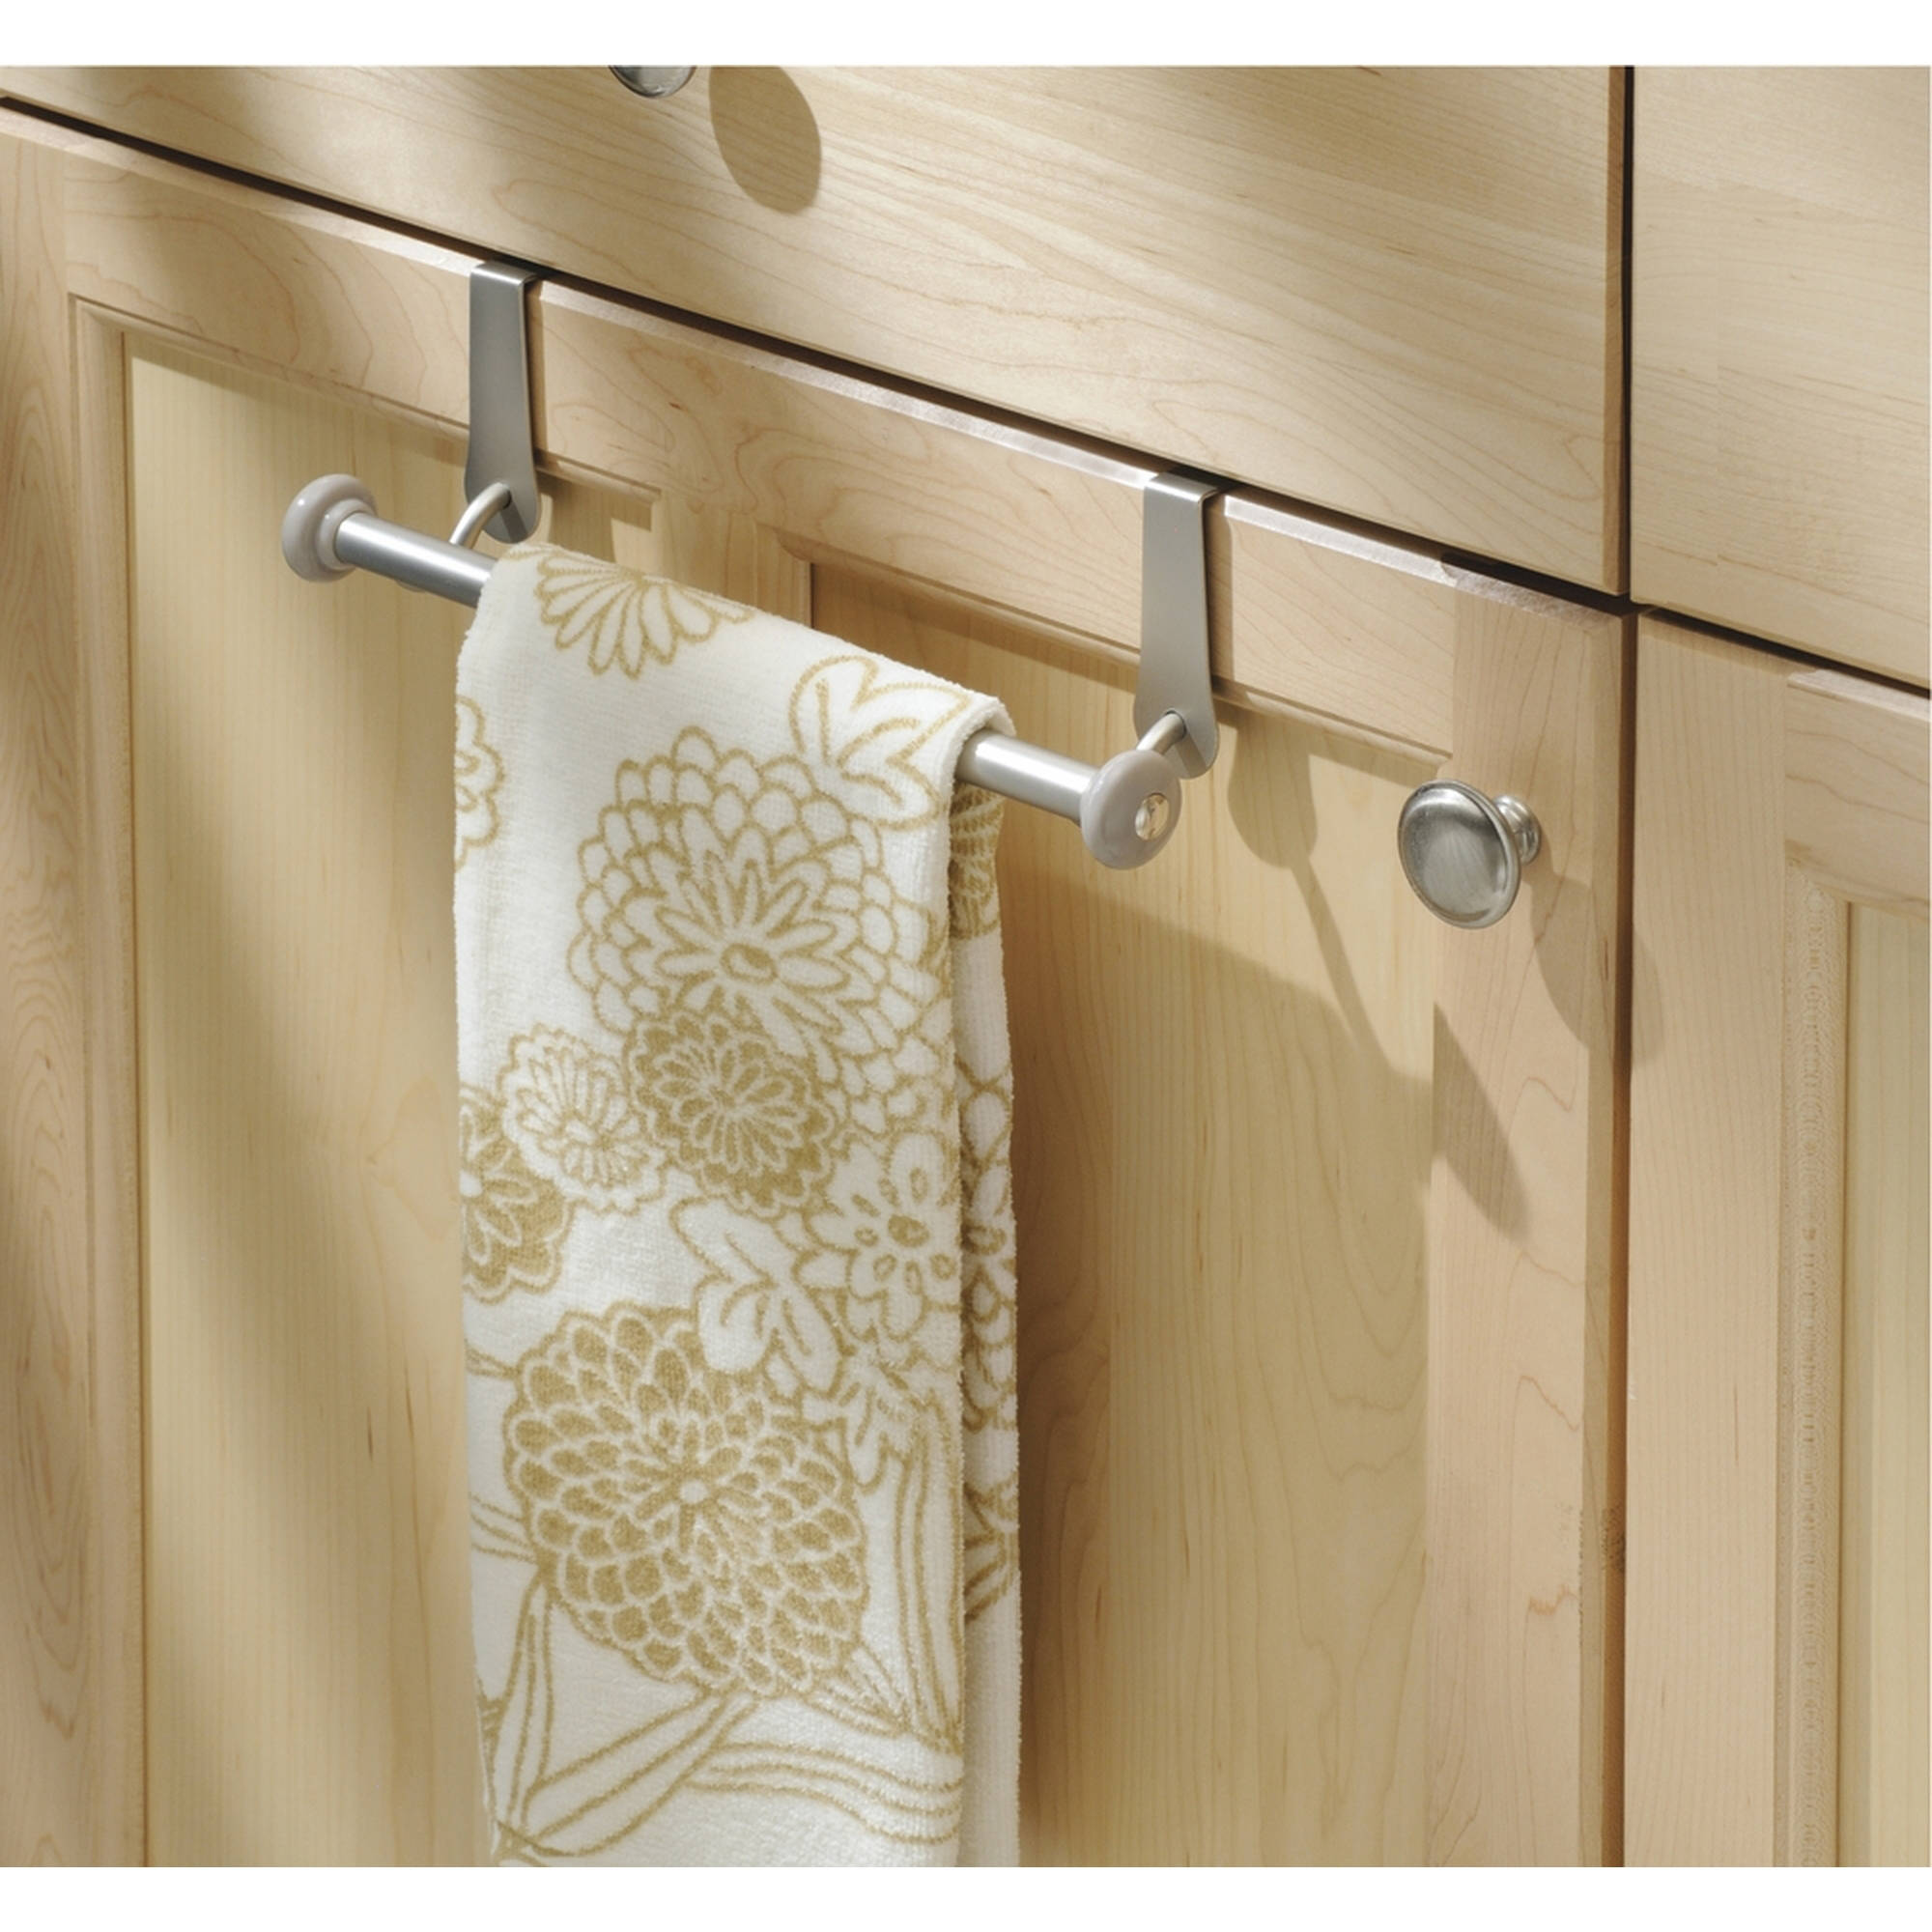 Interdesign York Over The Cabinet Kitchen Dish Towel Bar Holder